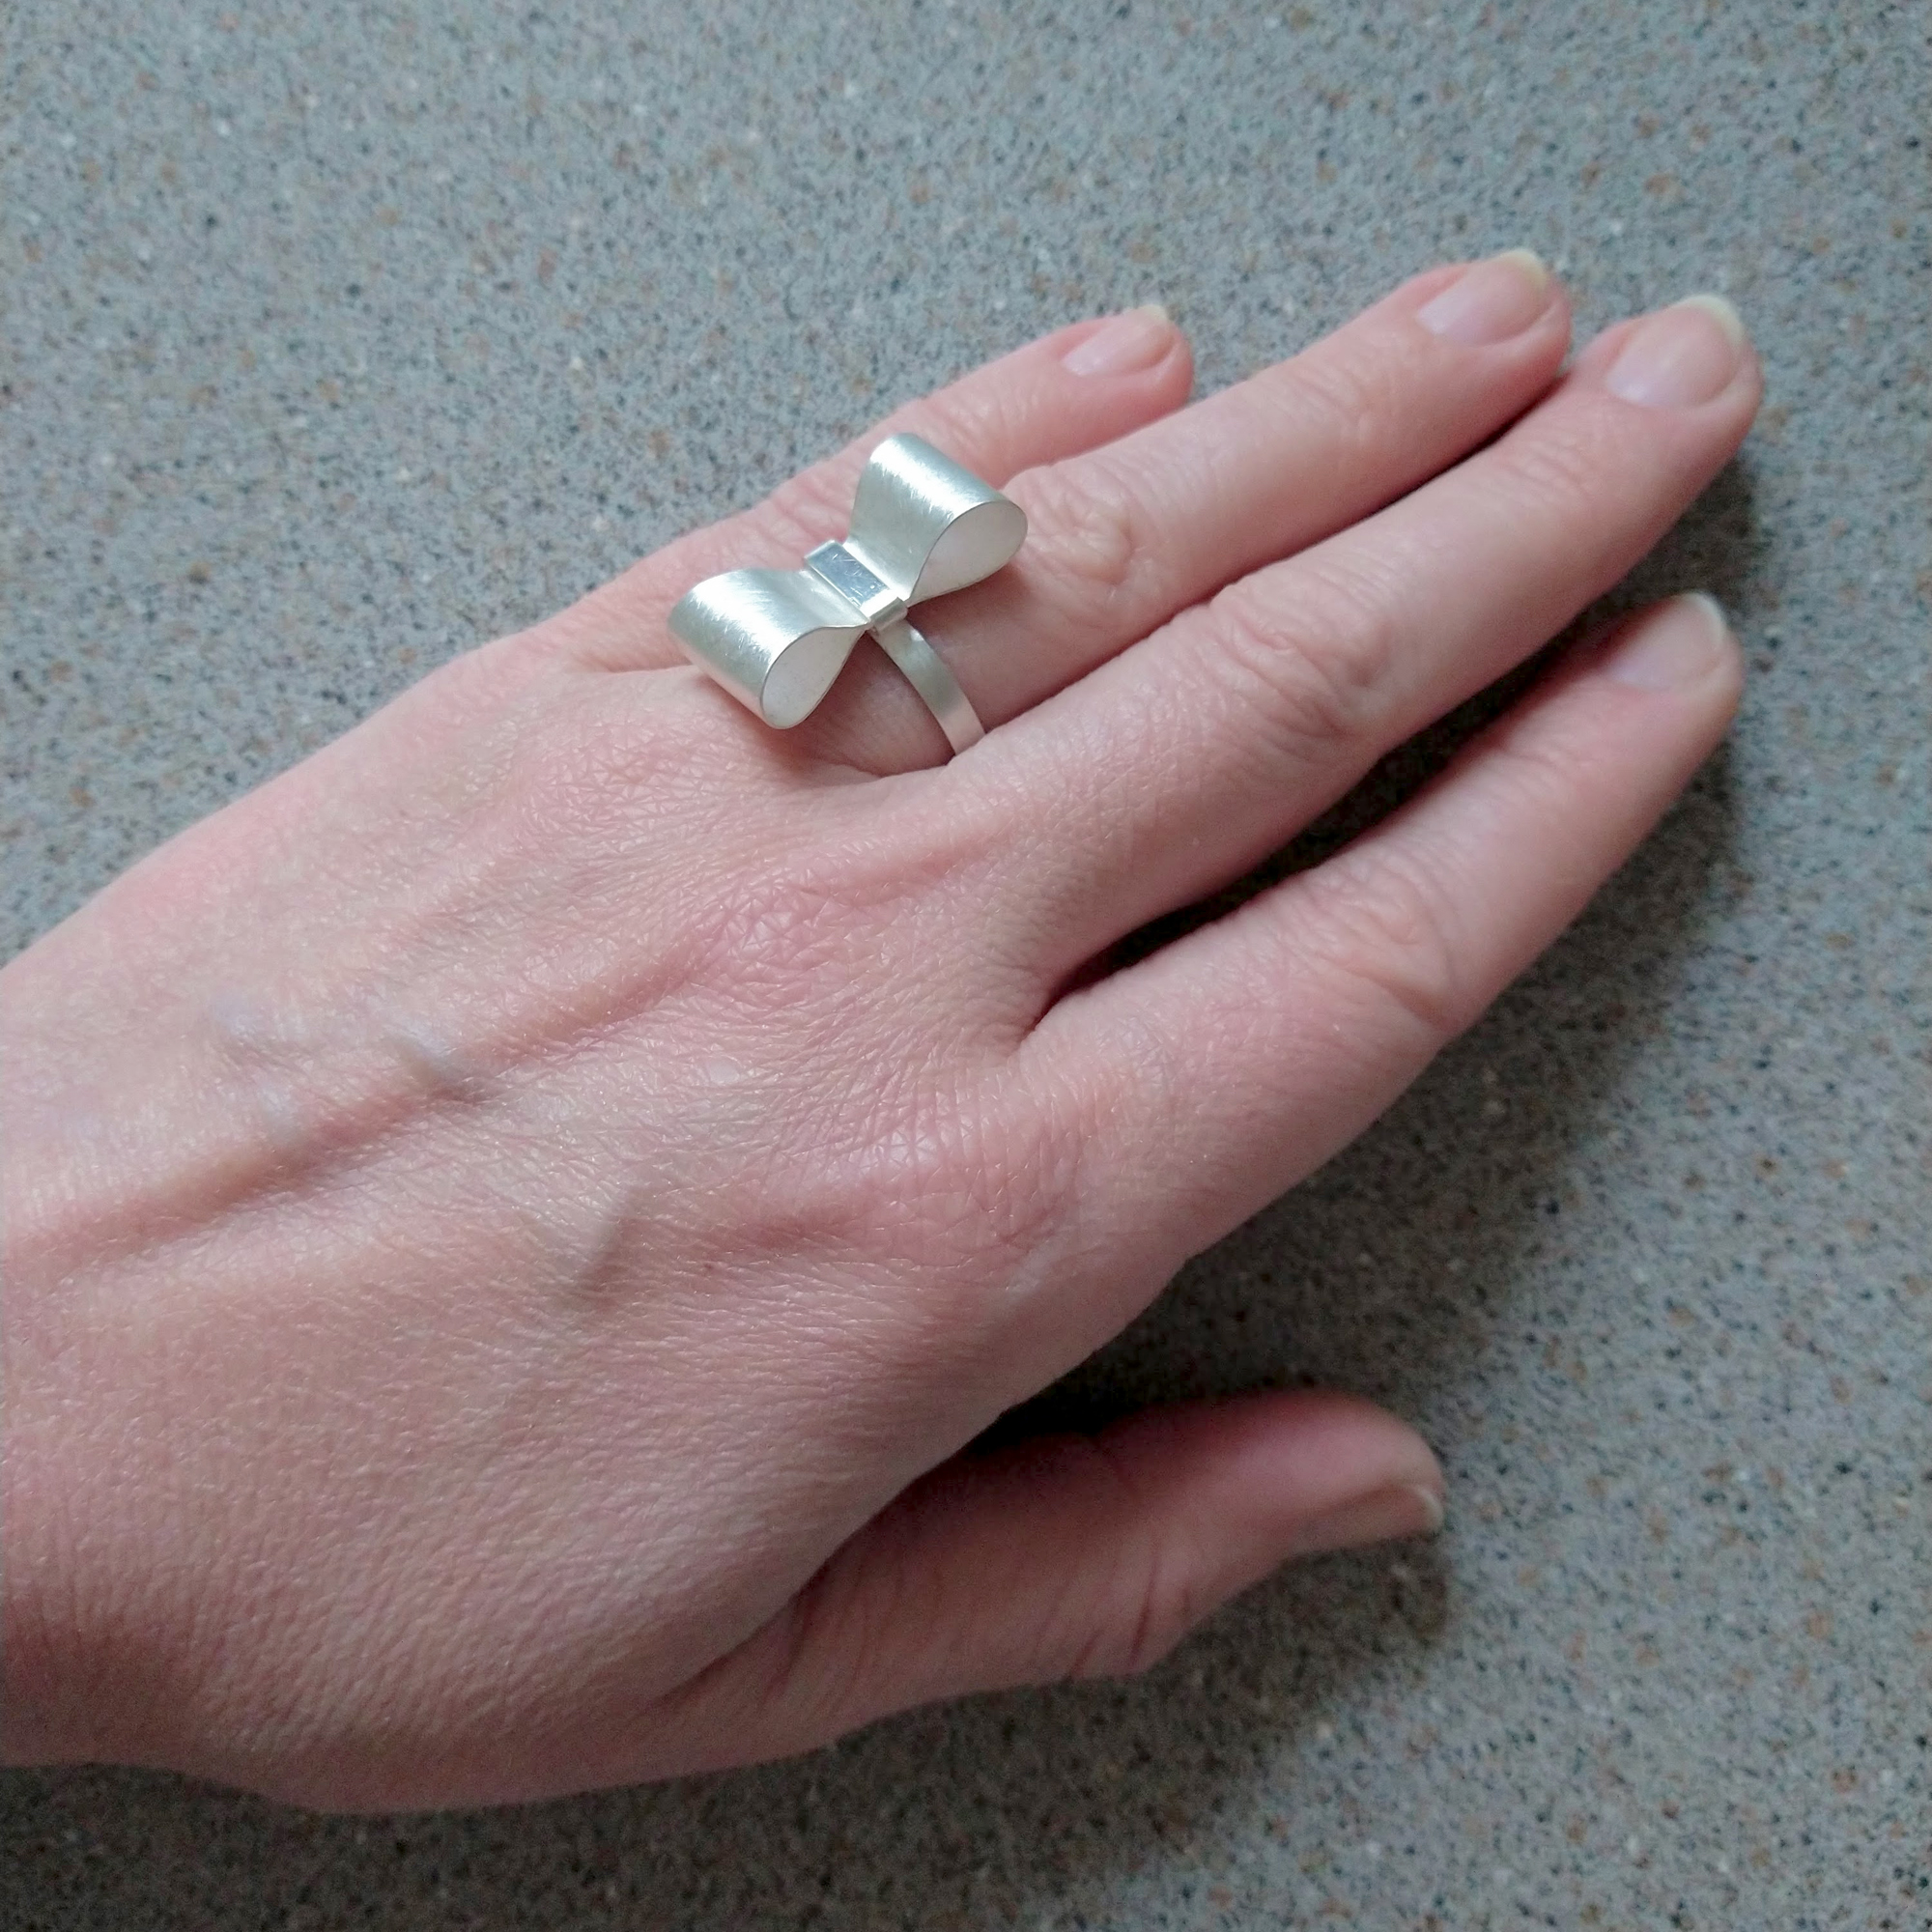 Silver Bowknot Ring - Silver Ring shown worn